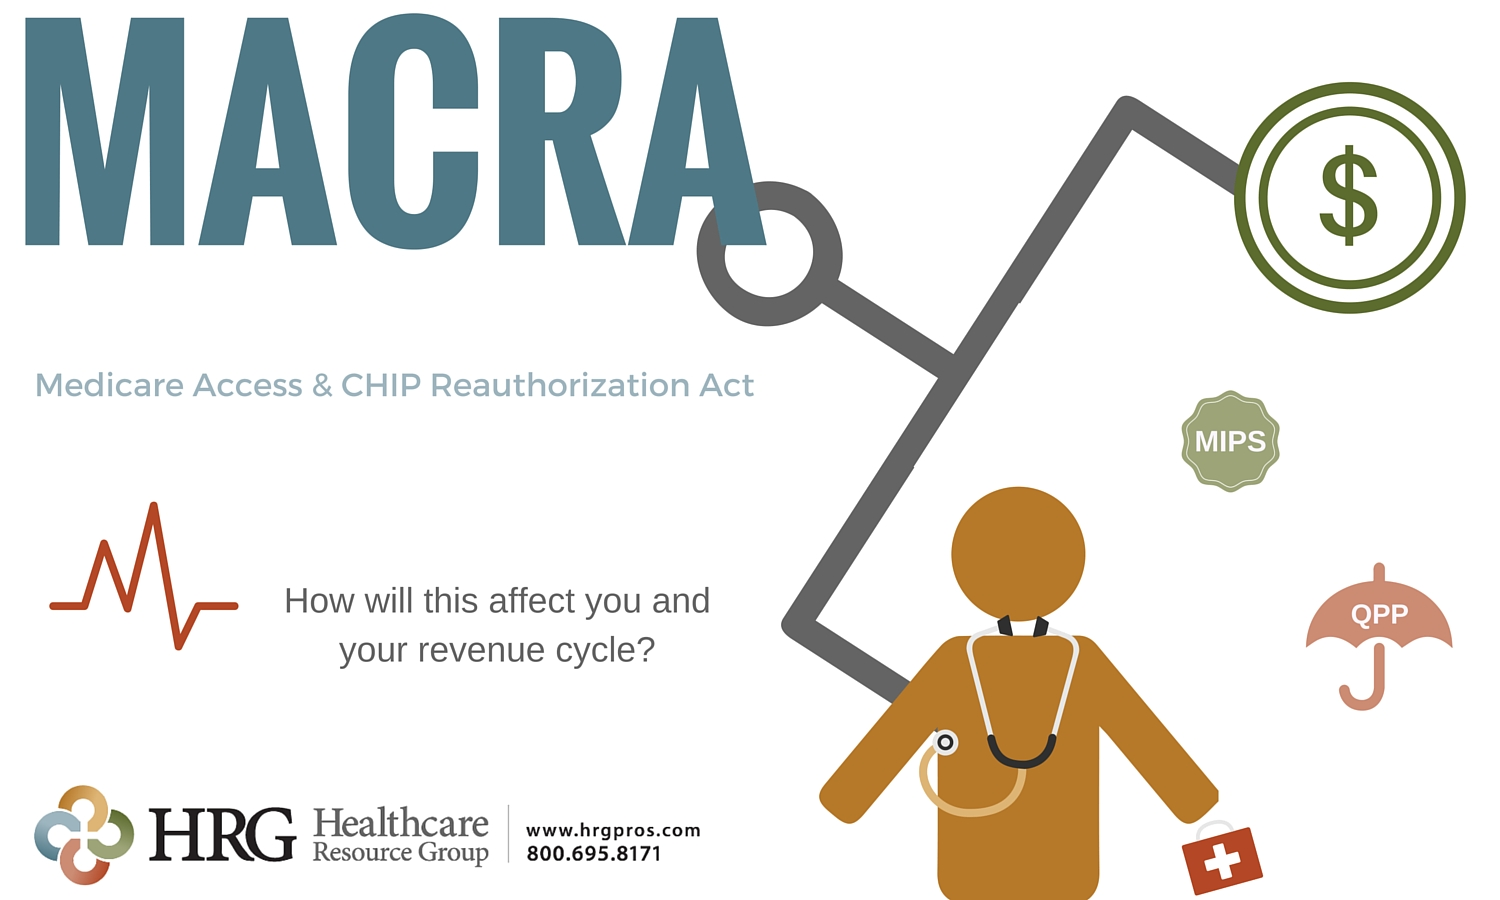 Medicare-Access-CHIP-Reauthorization-Act